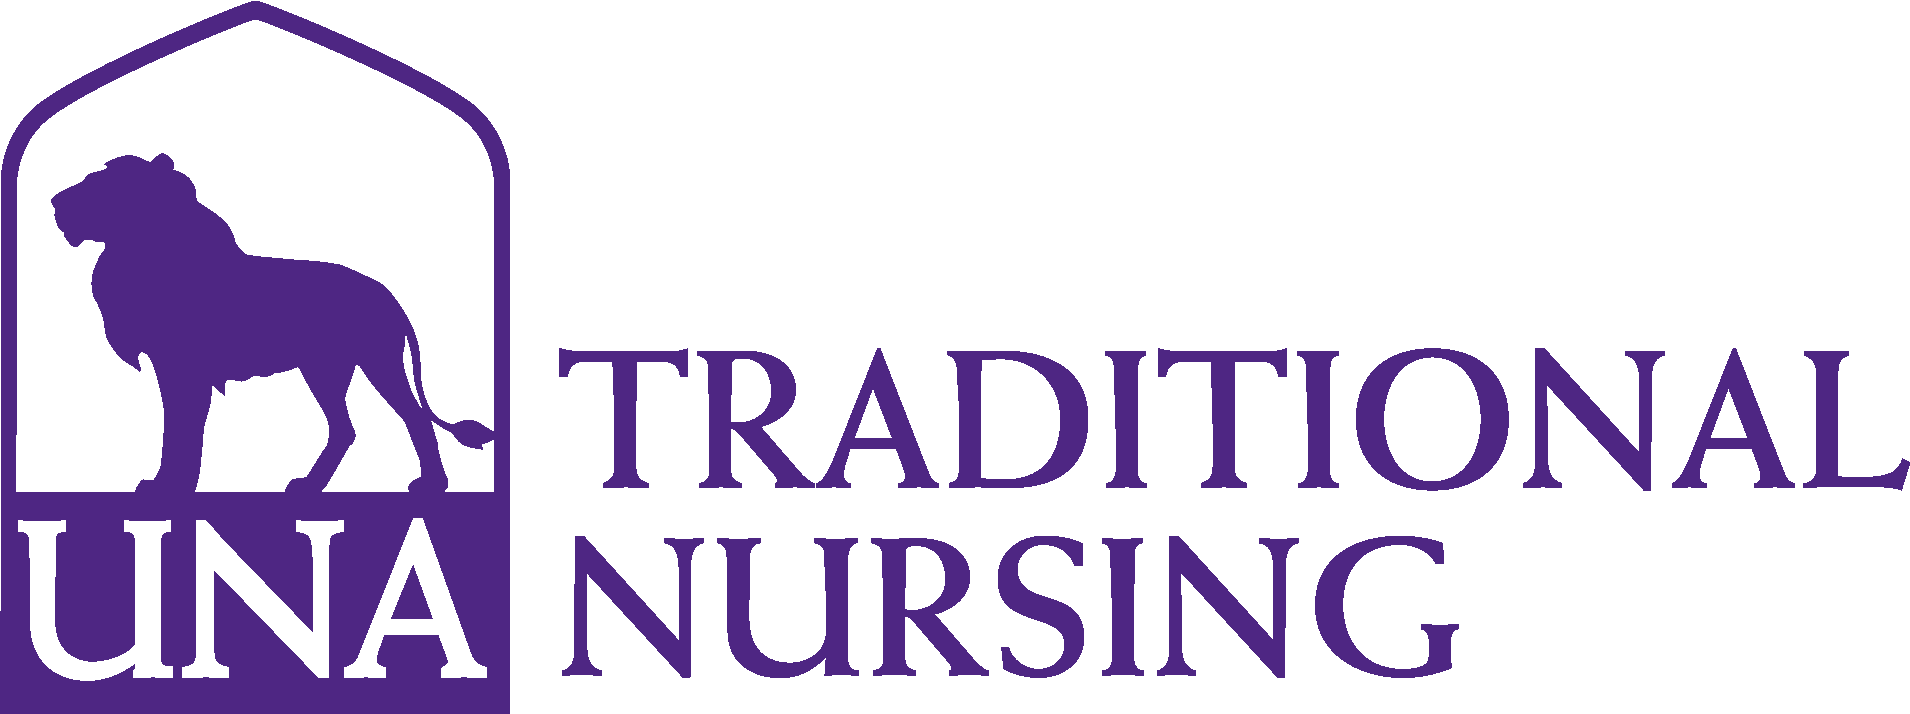 Anderson College of Nursing Traditional Logo - Purple - Version 3